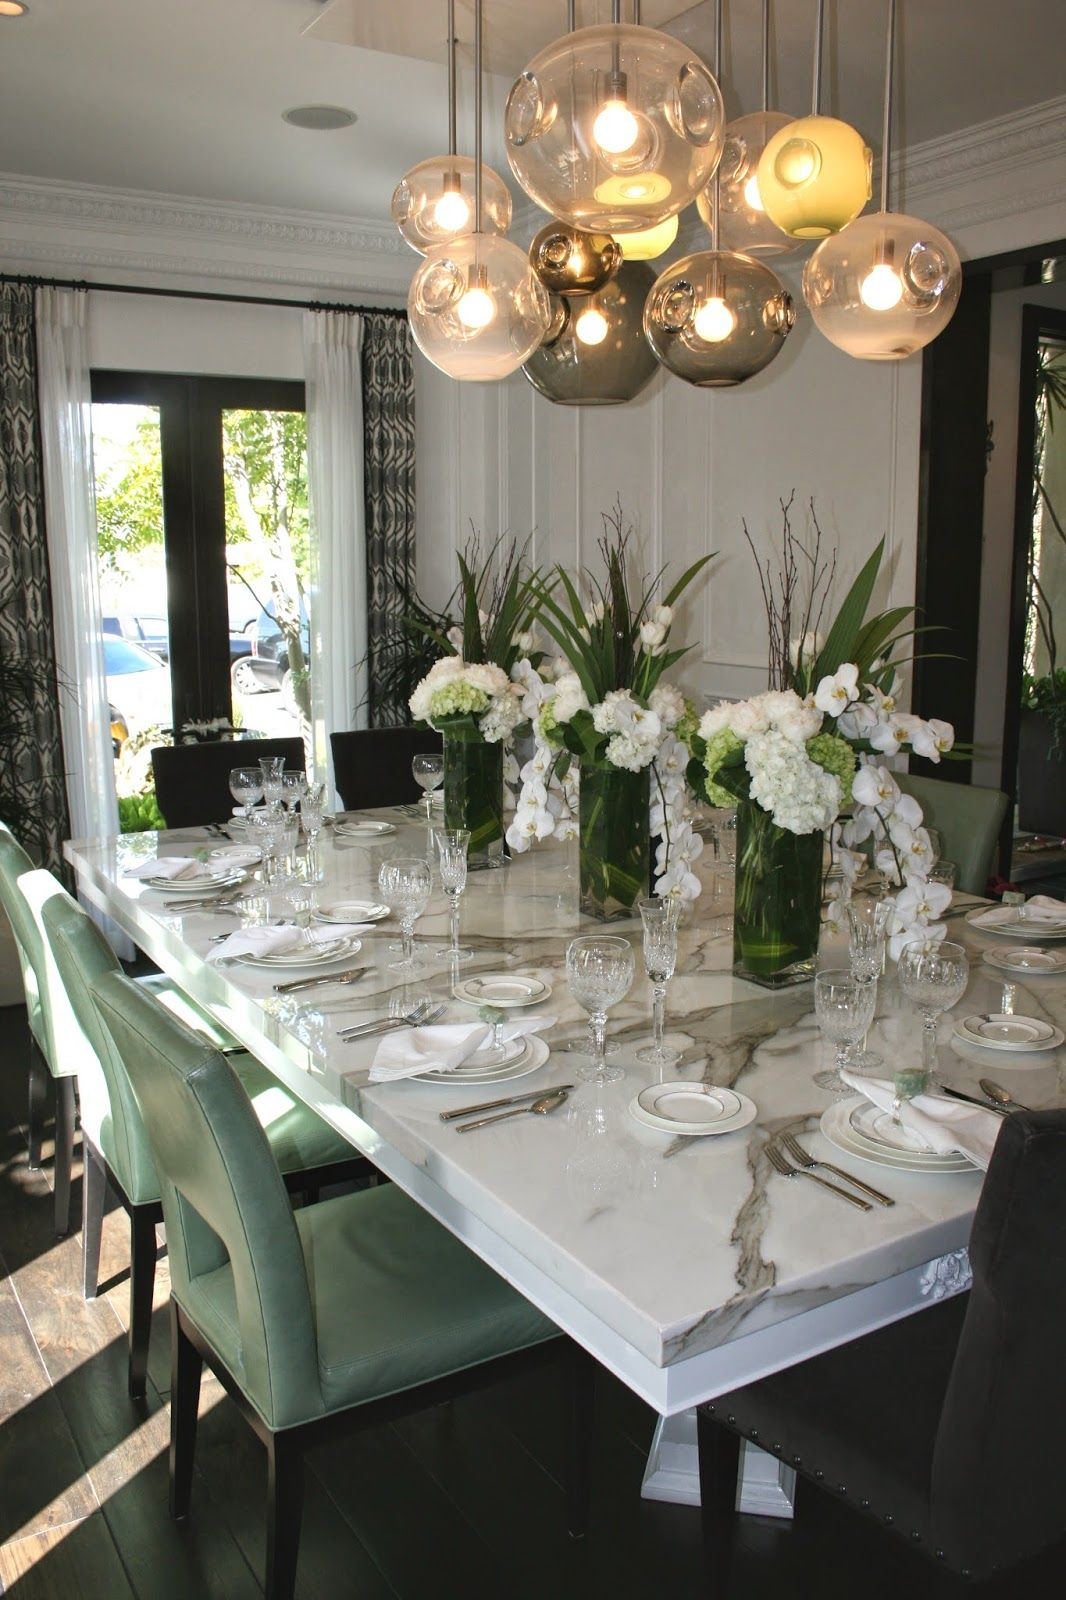 marble dining room furniture. This Dining Room With Its Gorgeous Chandelier And Marble Table Furniture G